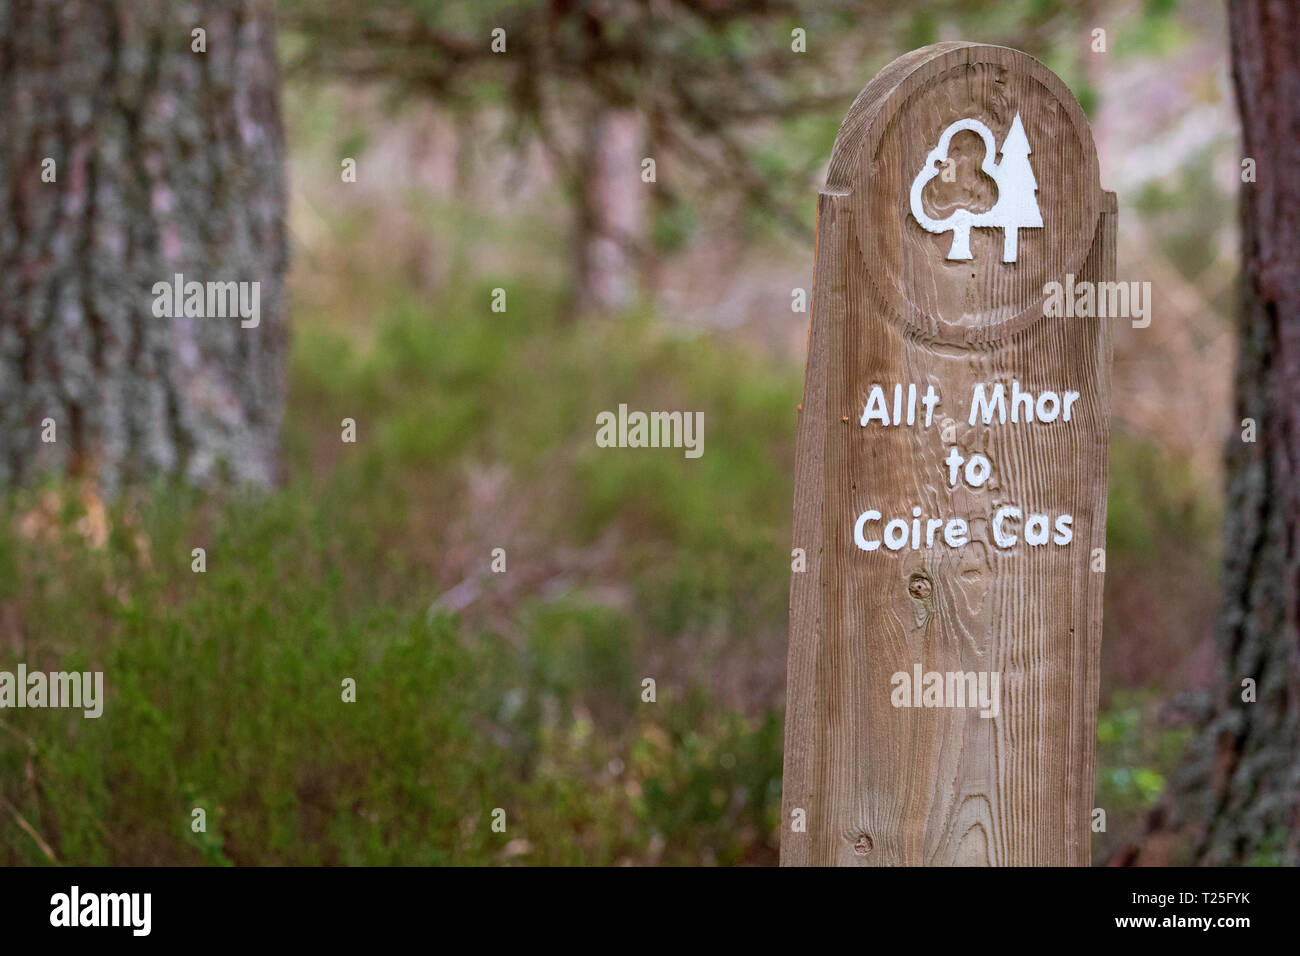 Allt Mhor to Coire Cas wood carved walking post showing direction and start of walk at Glenmore Forest Park in the Cairngorms National Park, Aviemore - Stock Image